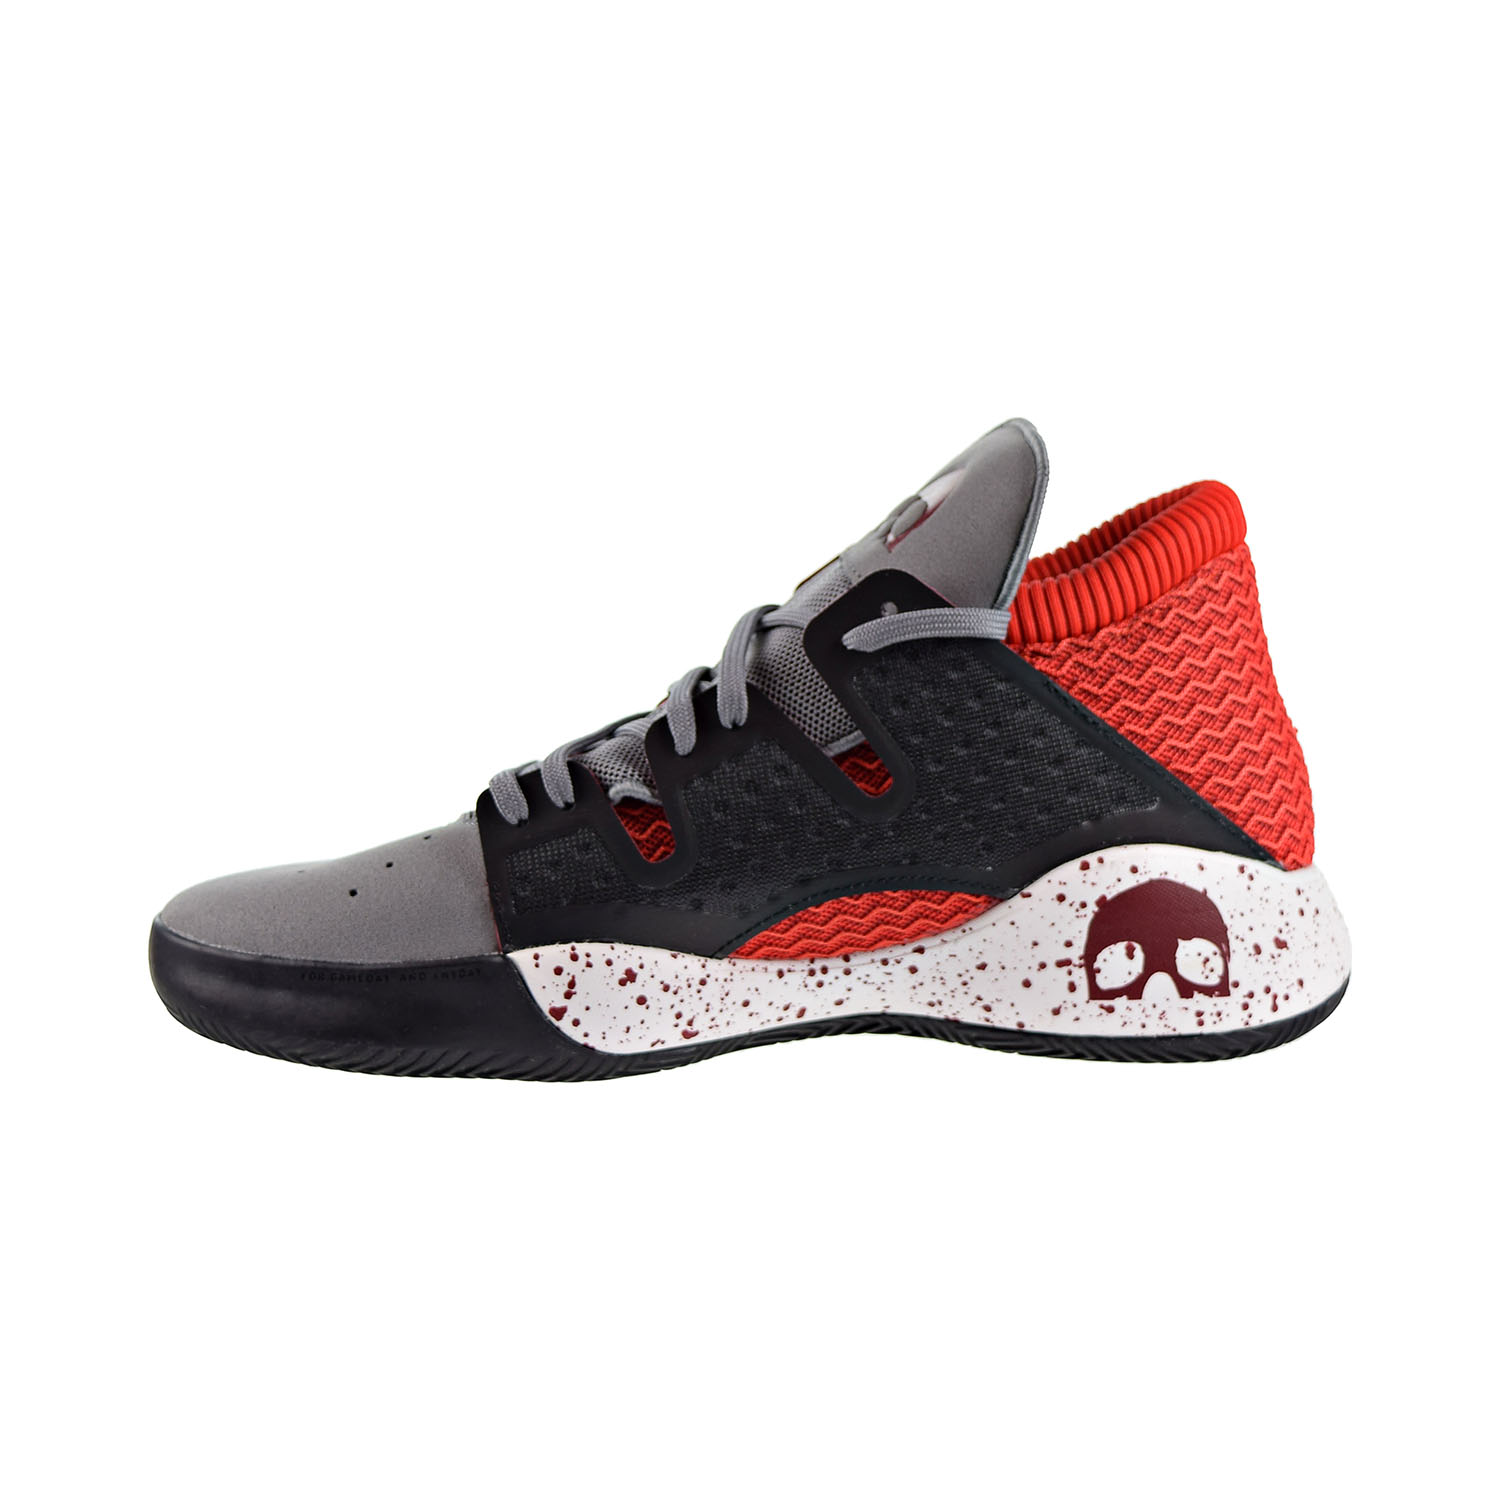 Details about Adidas Pro Vision Men's Basketball Shoes Grey Three Collegiate Burgundy G27754